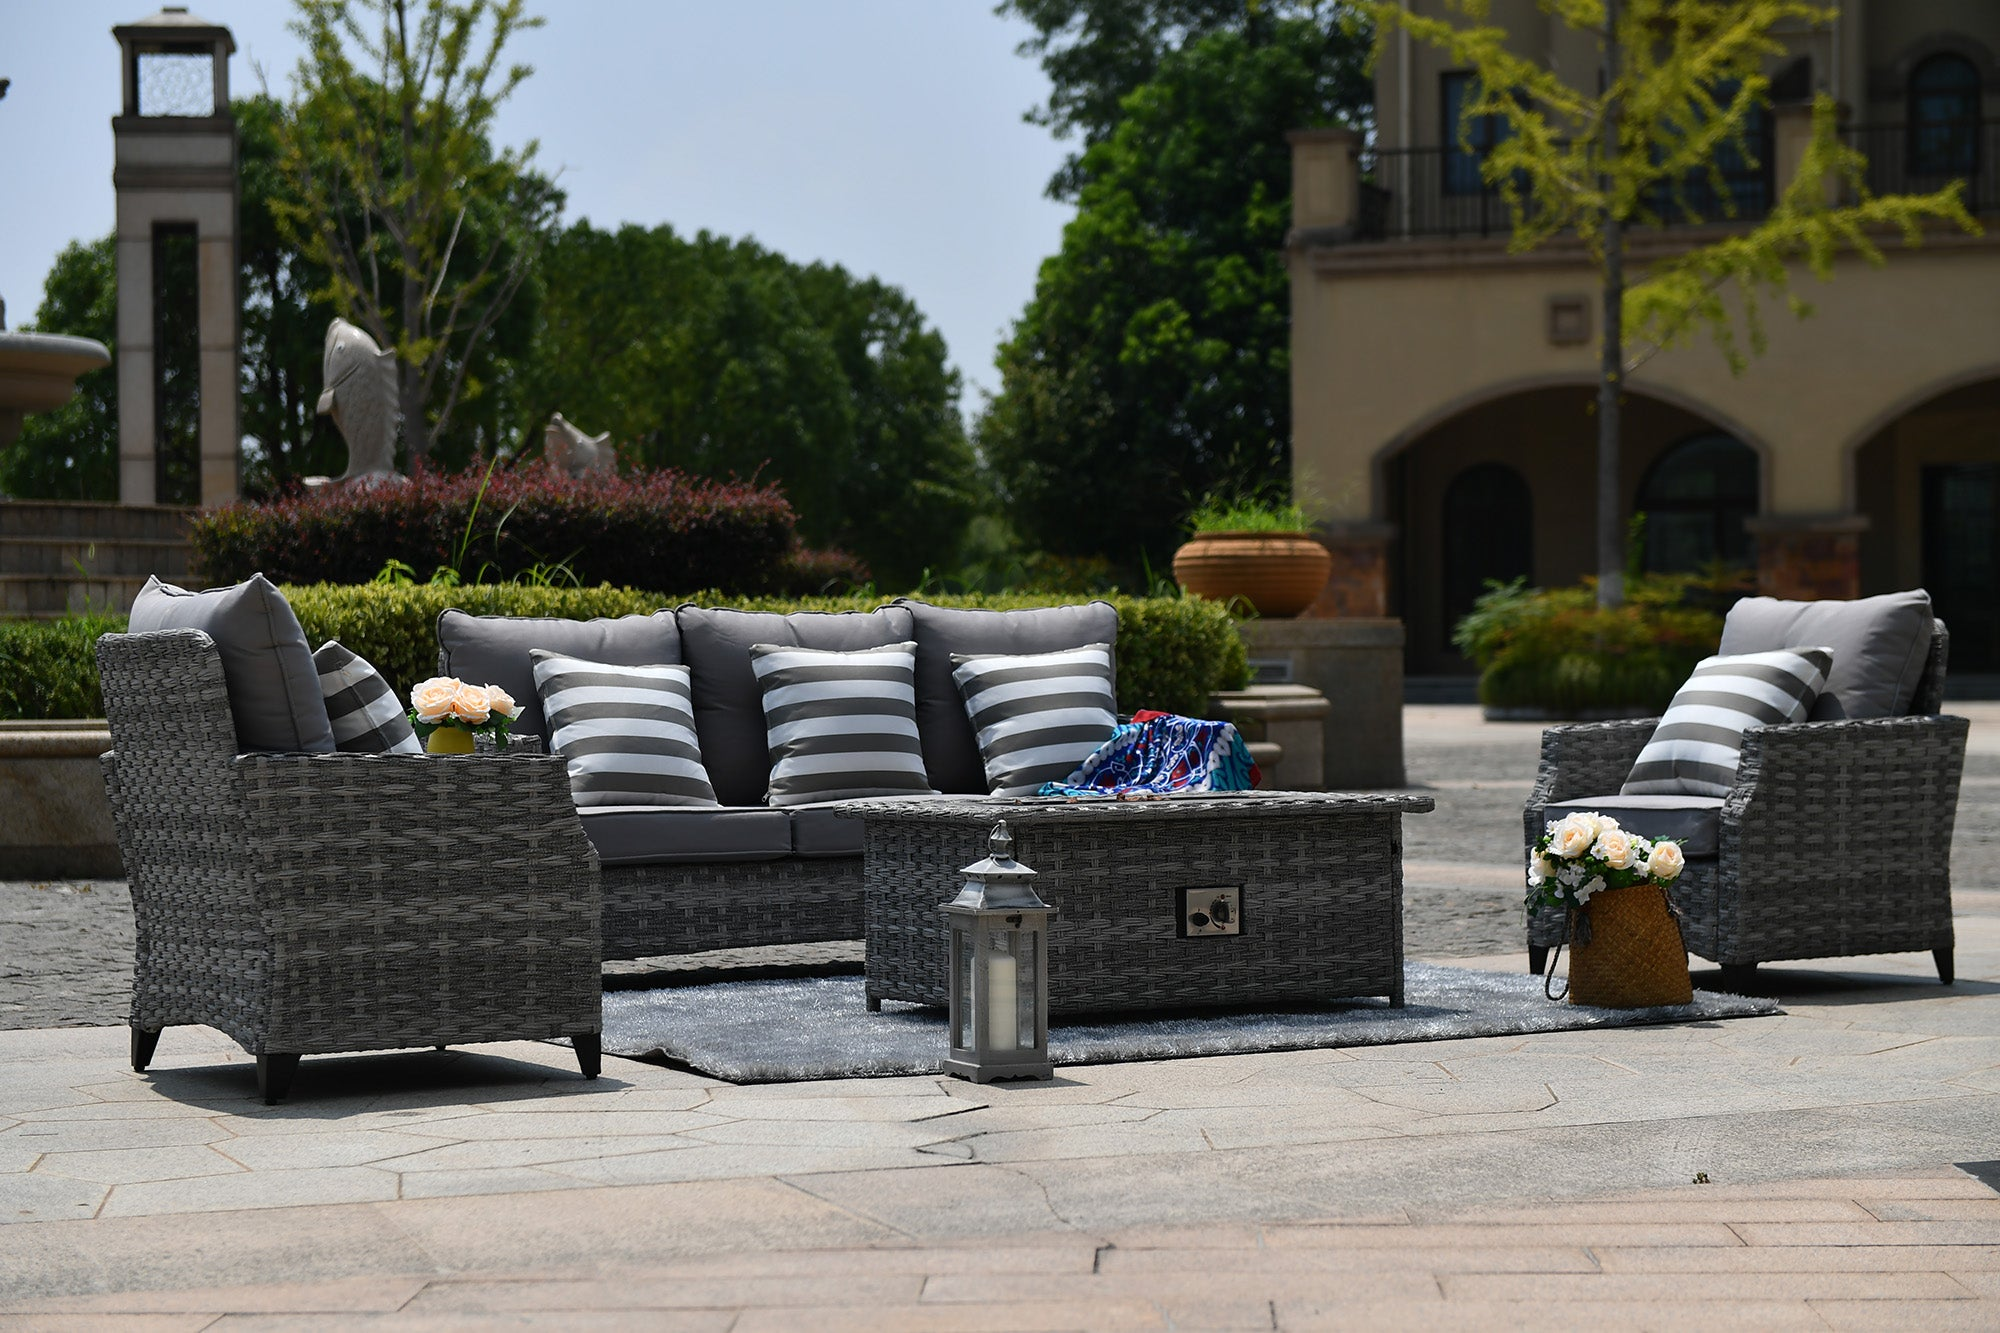 Complete Ash 5 piece outdoor patio set by Mr. backyard